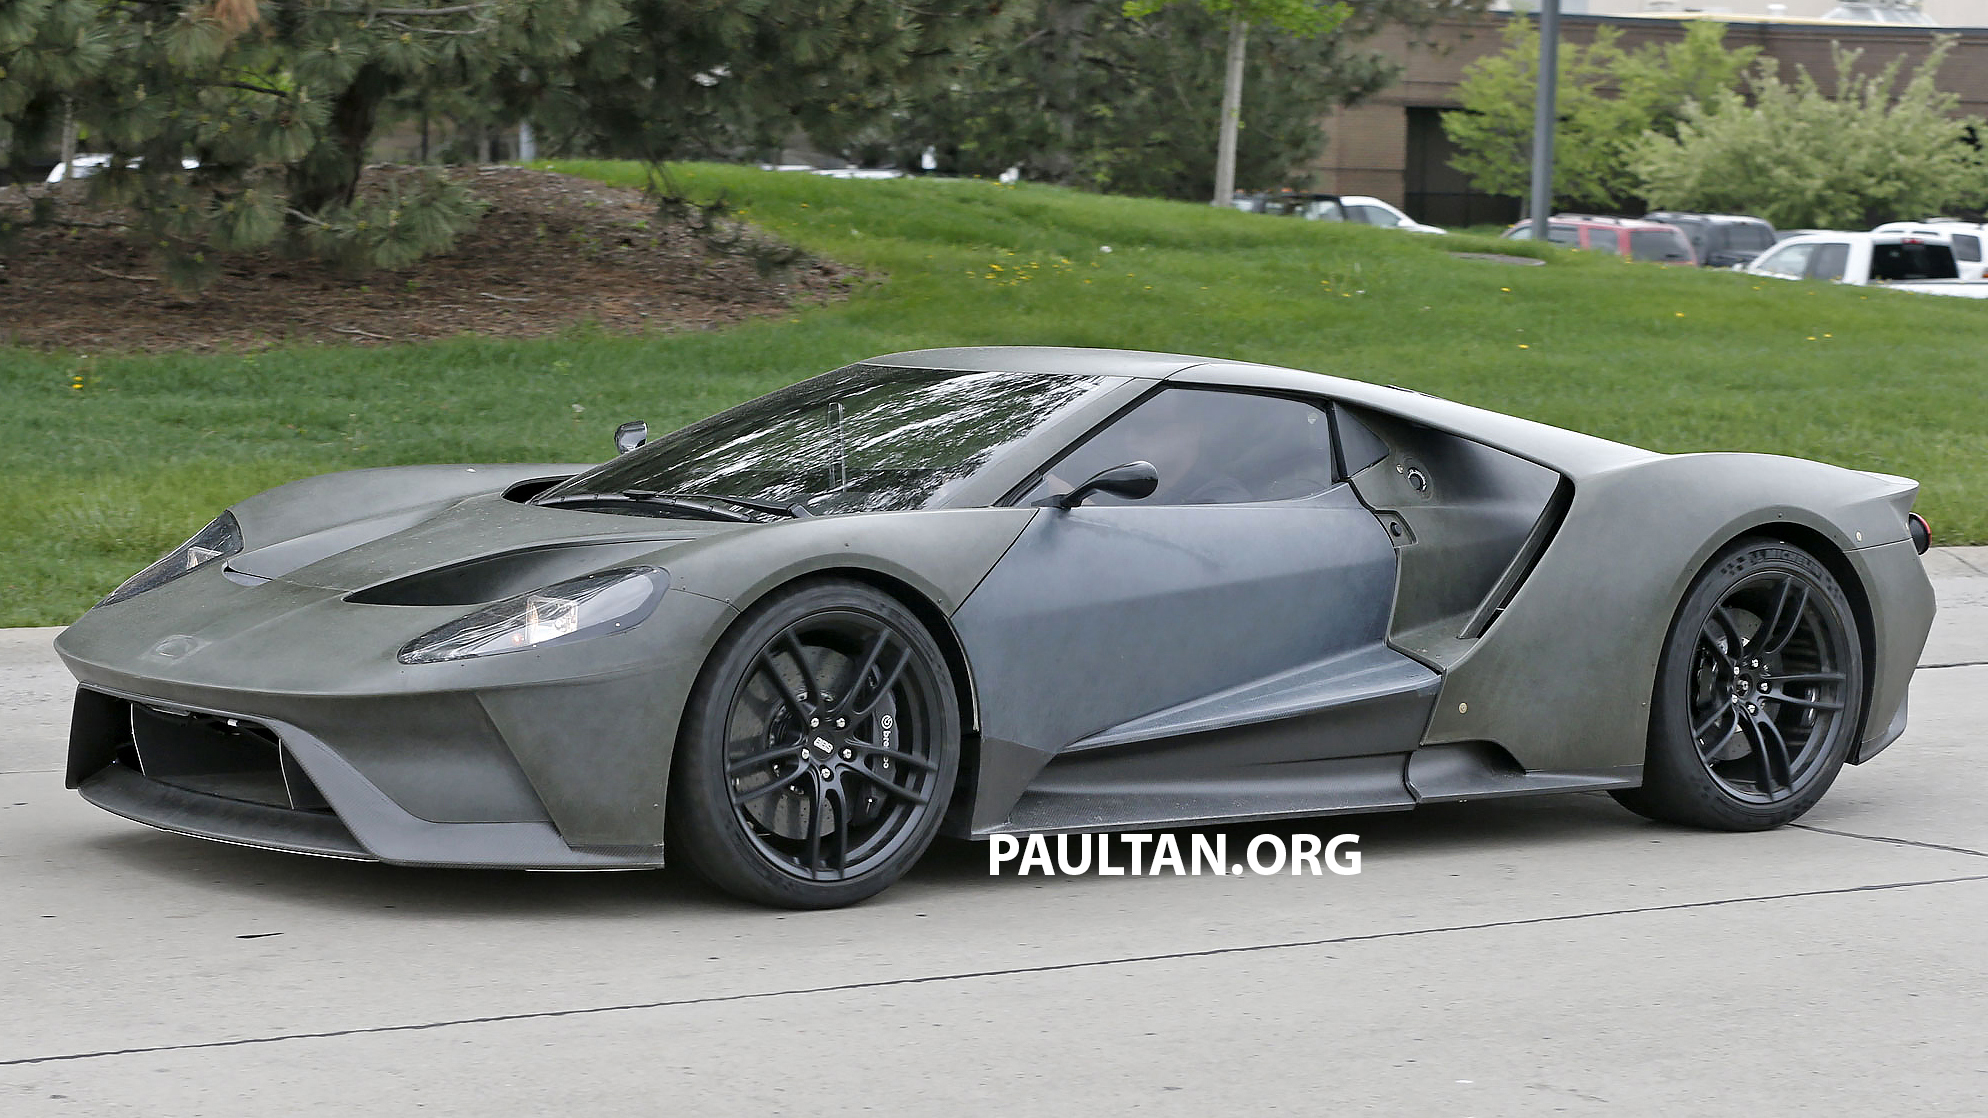 2015 Tl Spy Shots.html/page/privacy Statement | Autos Post